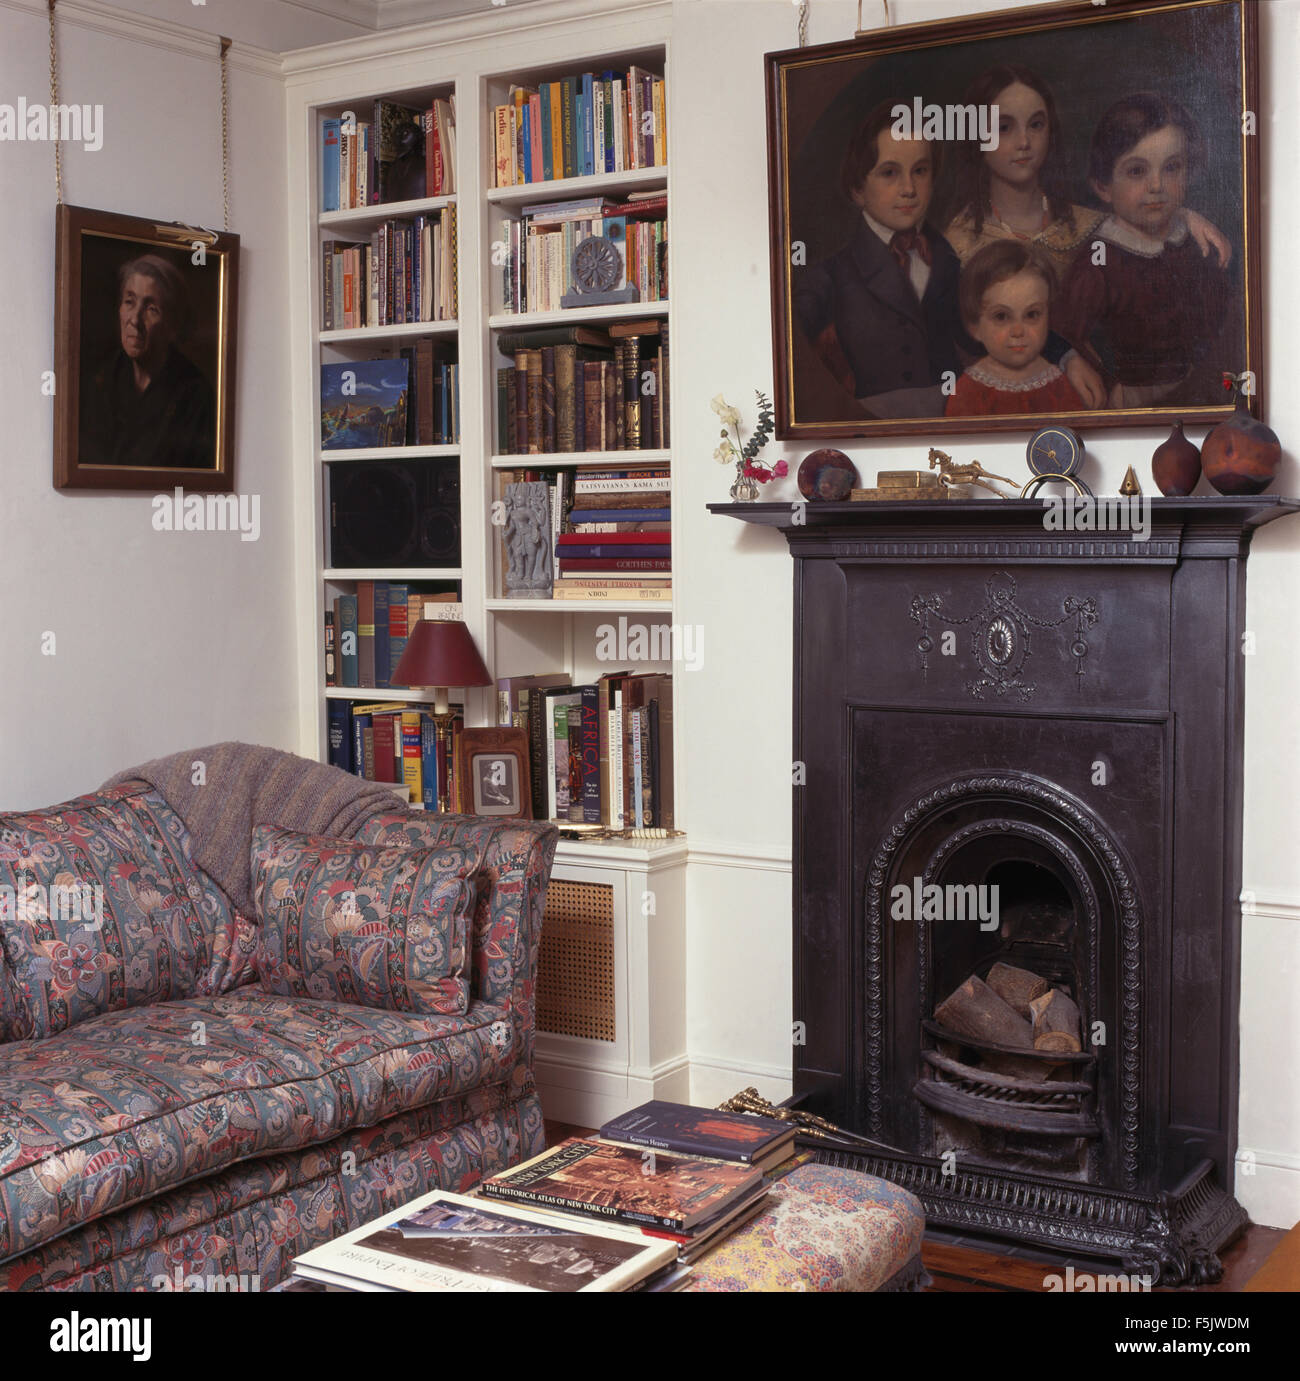 Smalle Kast Wit.Oil Painting Above Small Cast Iron Fireplace I A Nineties Living